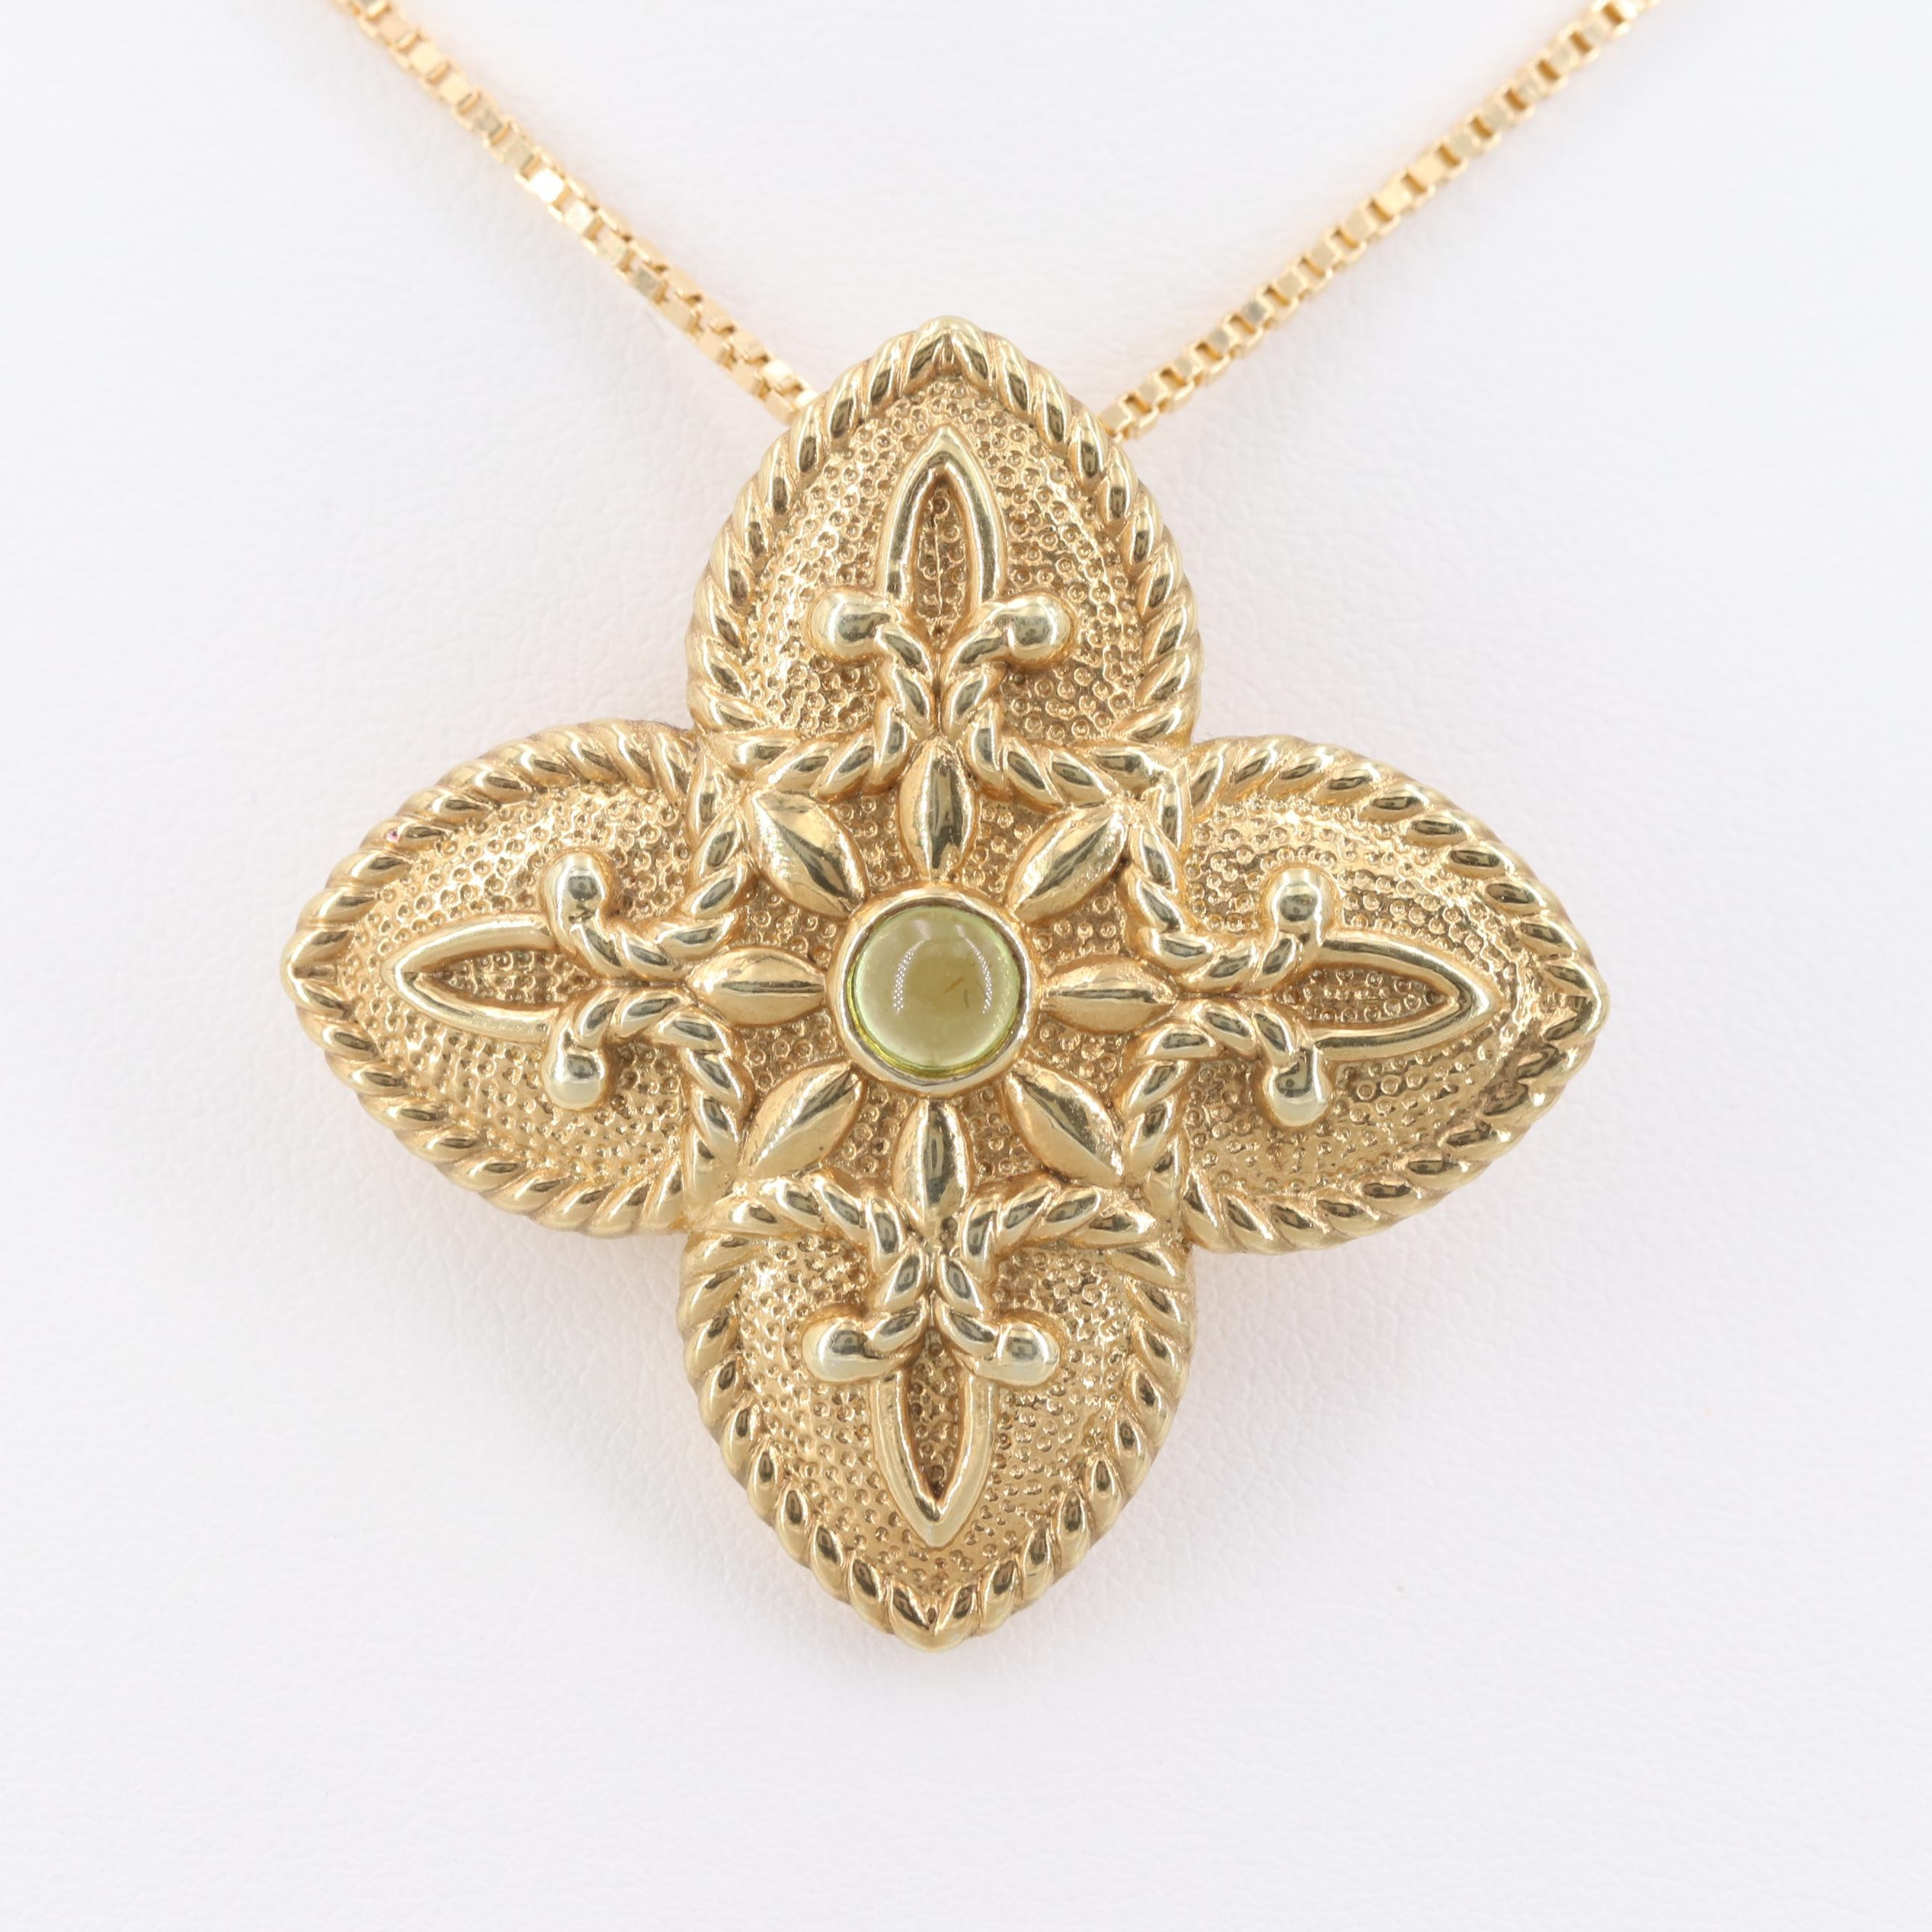 18K Yellow Gold Necklace with 14K Yellow Gold Peridot Pendant